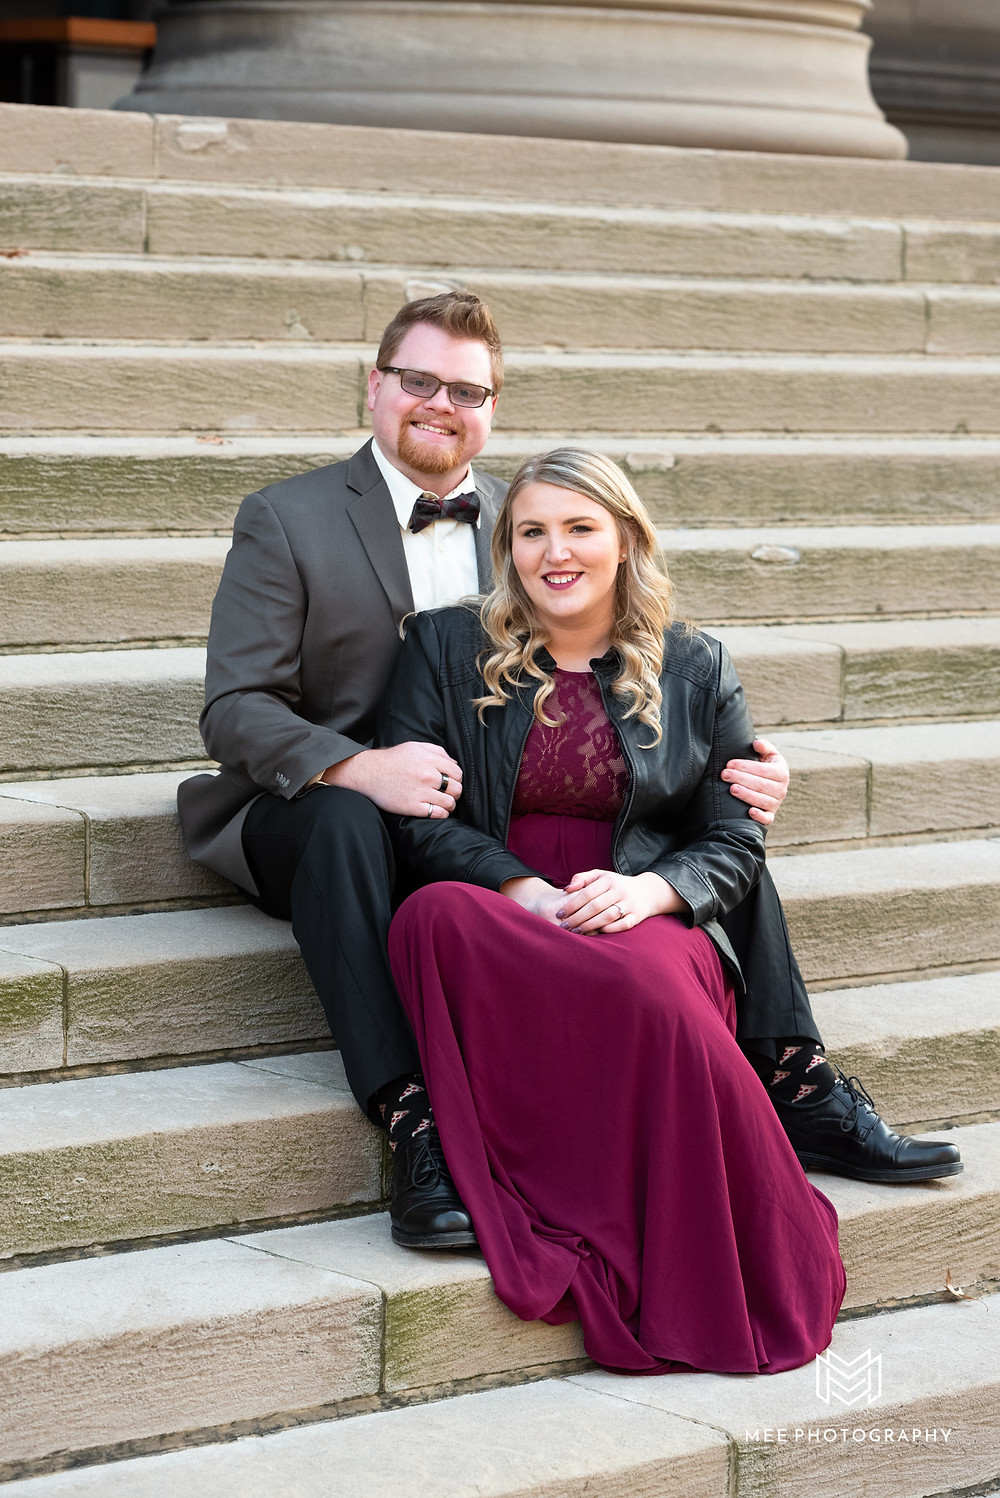 Portrait of a girl in burgudy dress and her fiance in a gray suit sitting on steps